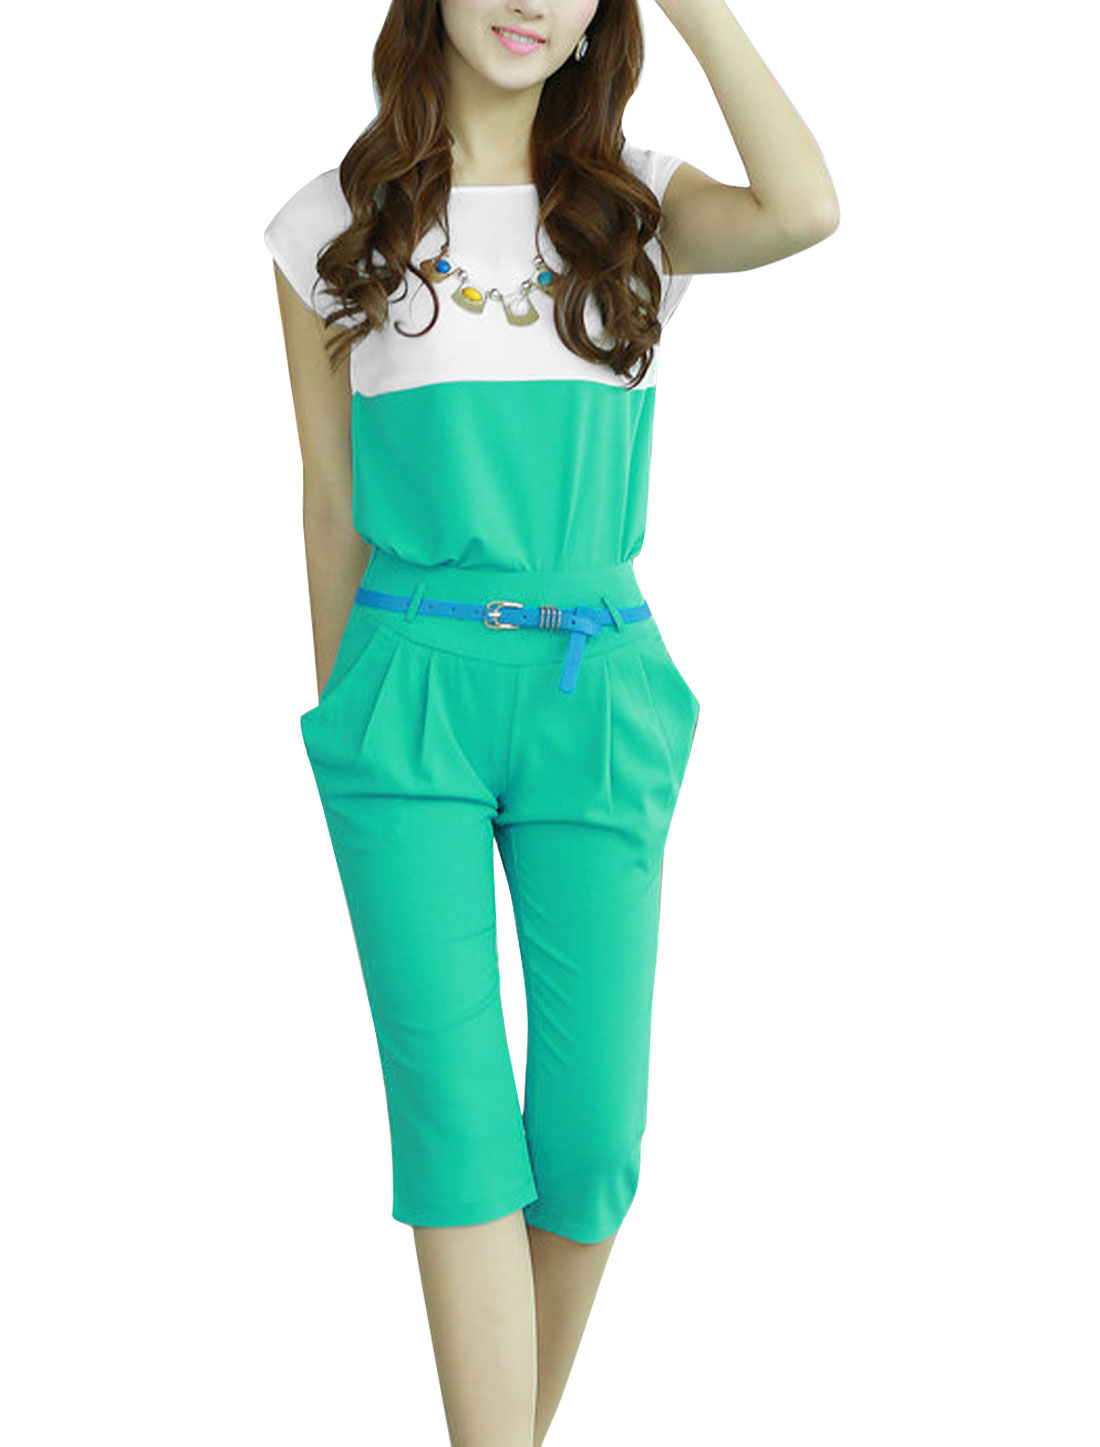 Lady Zipped Side Capris Pants w Belt w Contrast Color Top Green XS